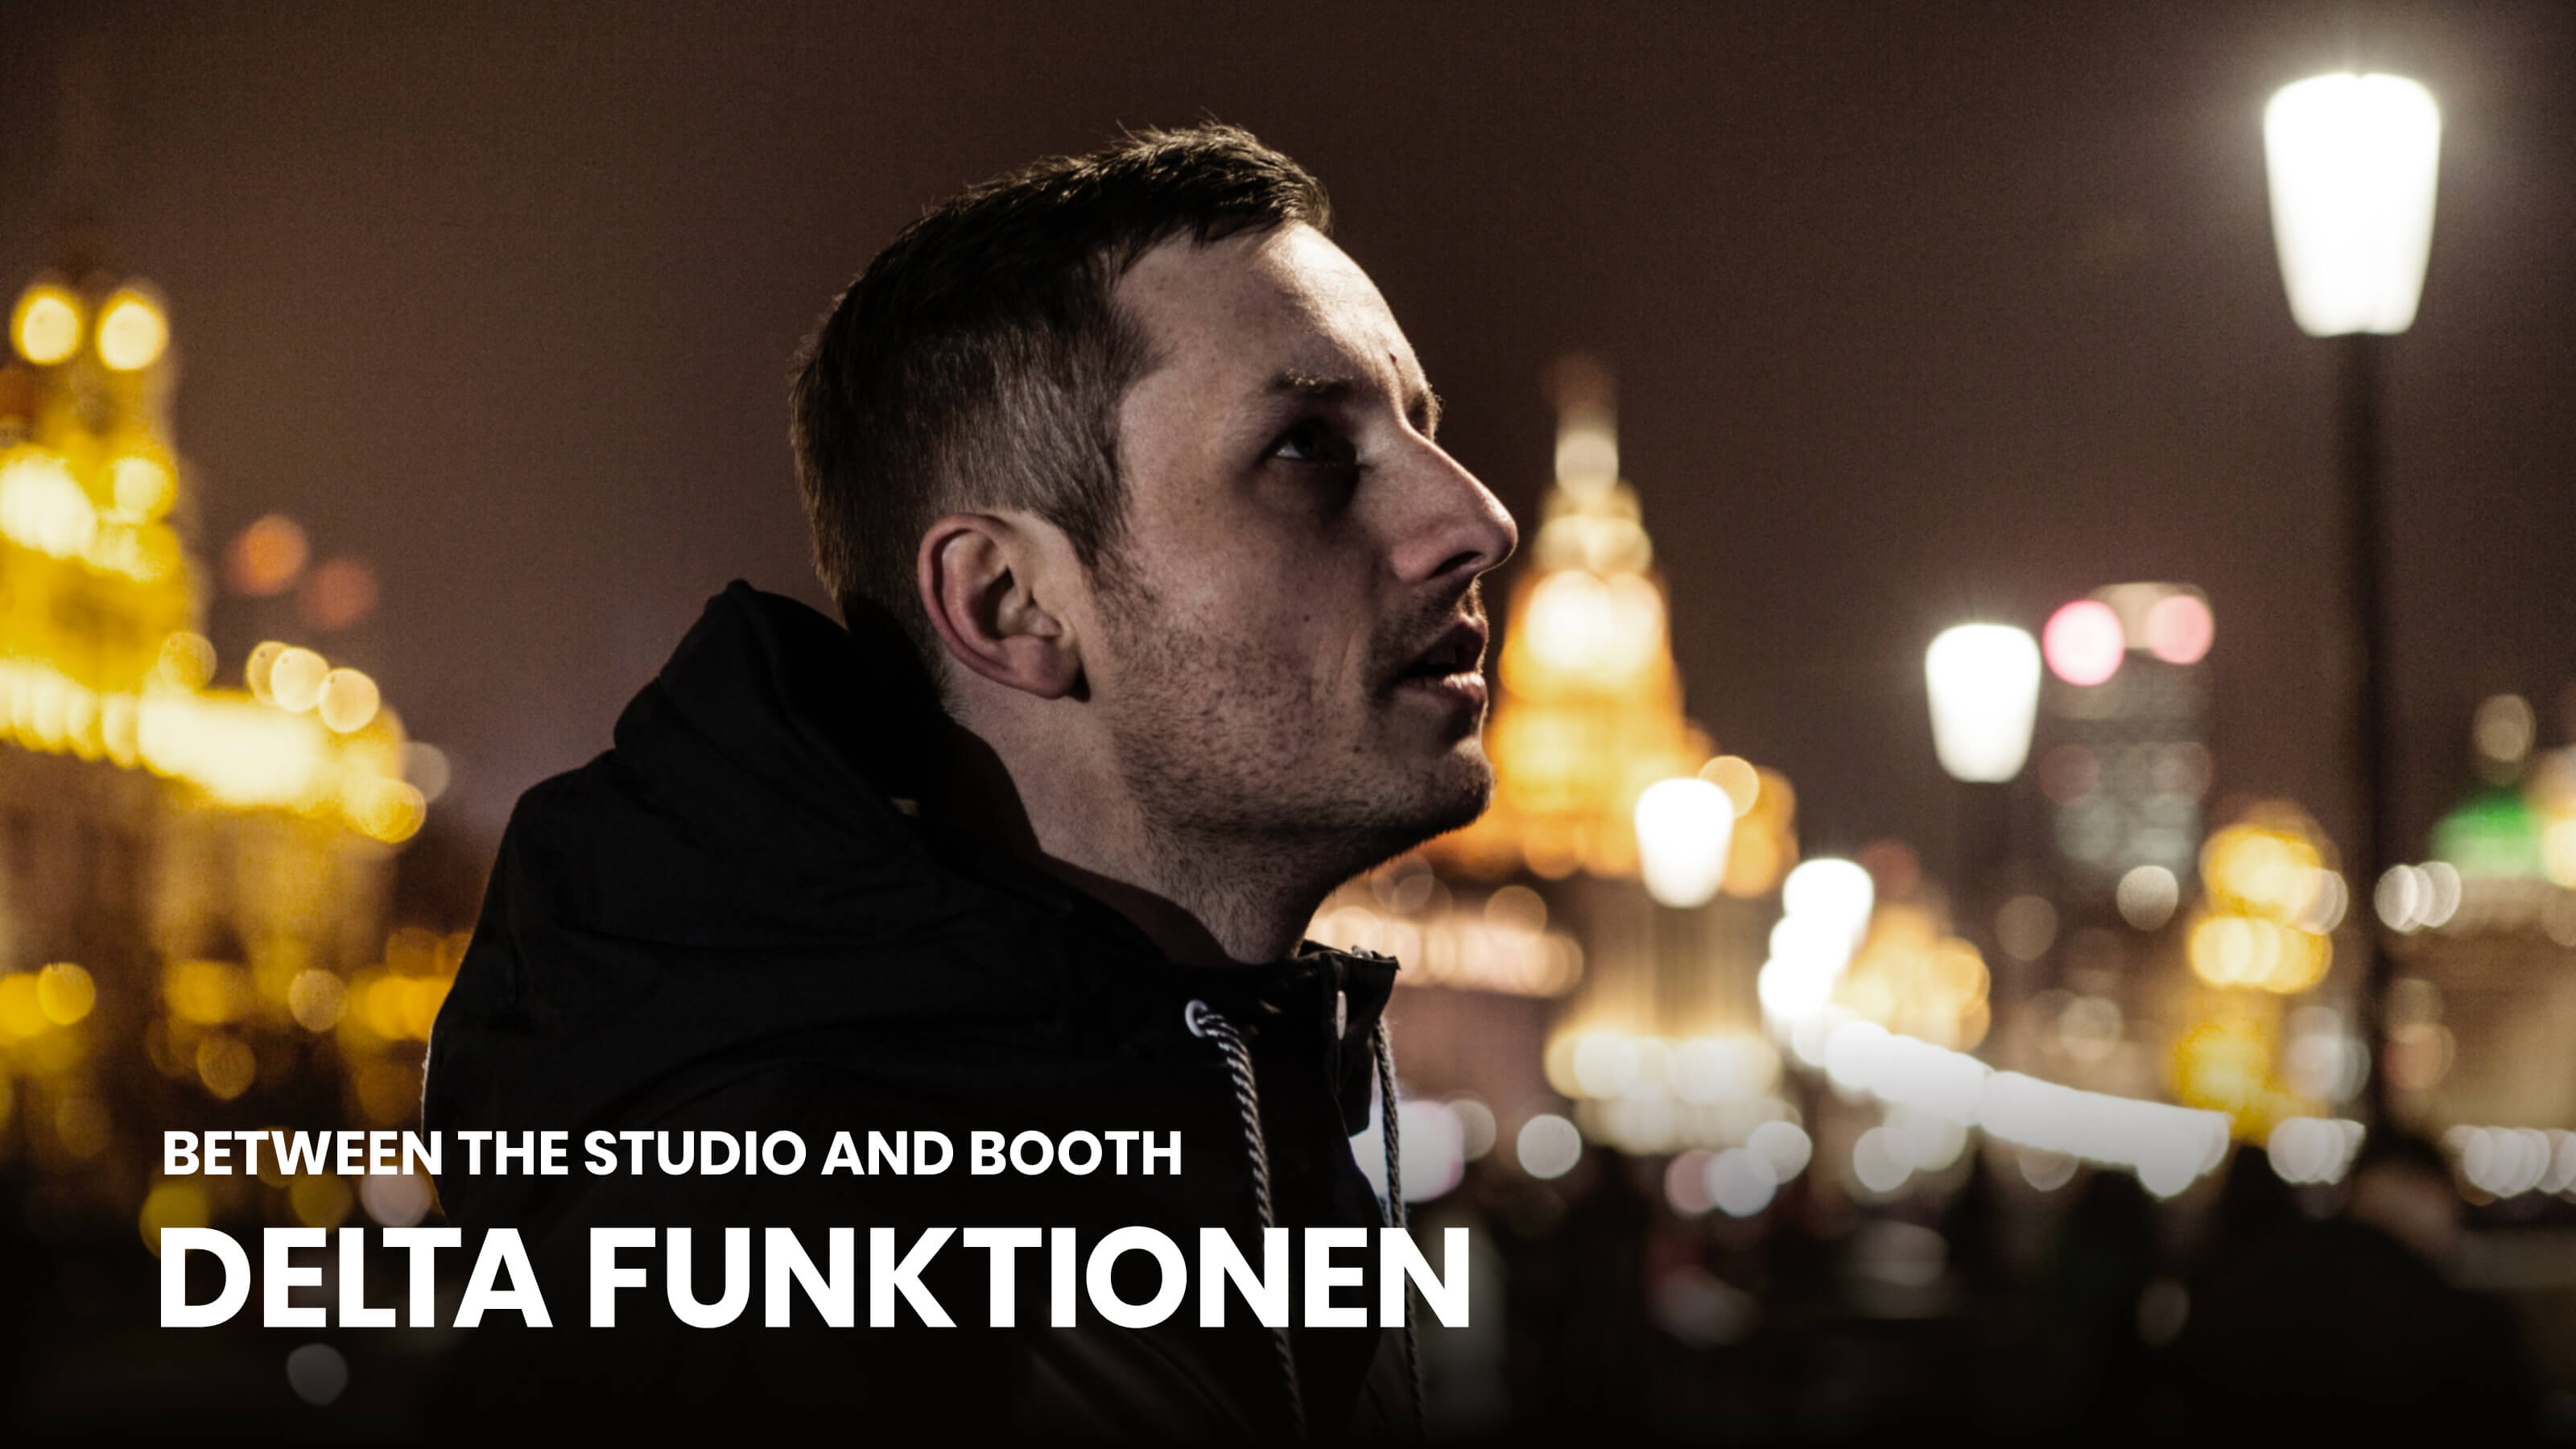 Between the Studio and Booth: Delta Funktionen